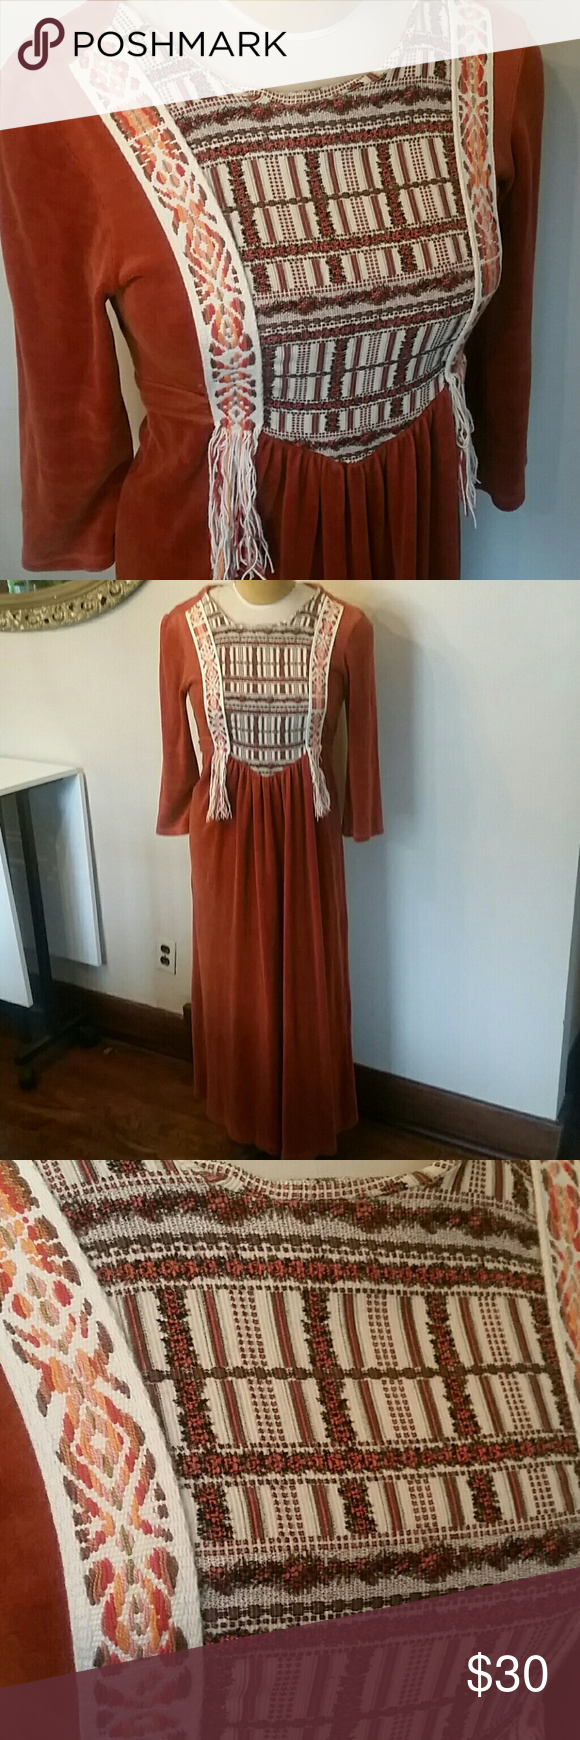 Vintage 70s maxi dress 70s Lilly Ann dress beautiful embroidery on bodice. Terrycloth orange kinda fabric. Ties in back beautiful boho piece Lilly ann Dresses Maxi